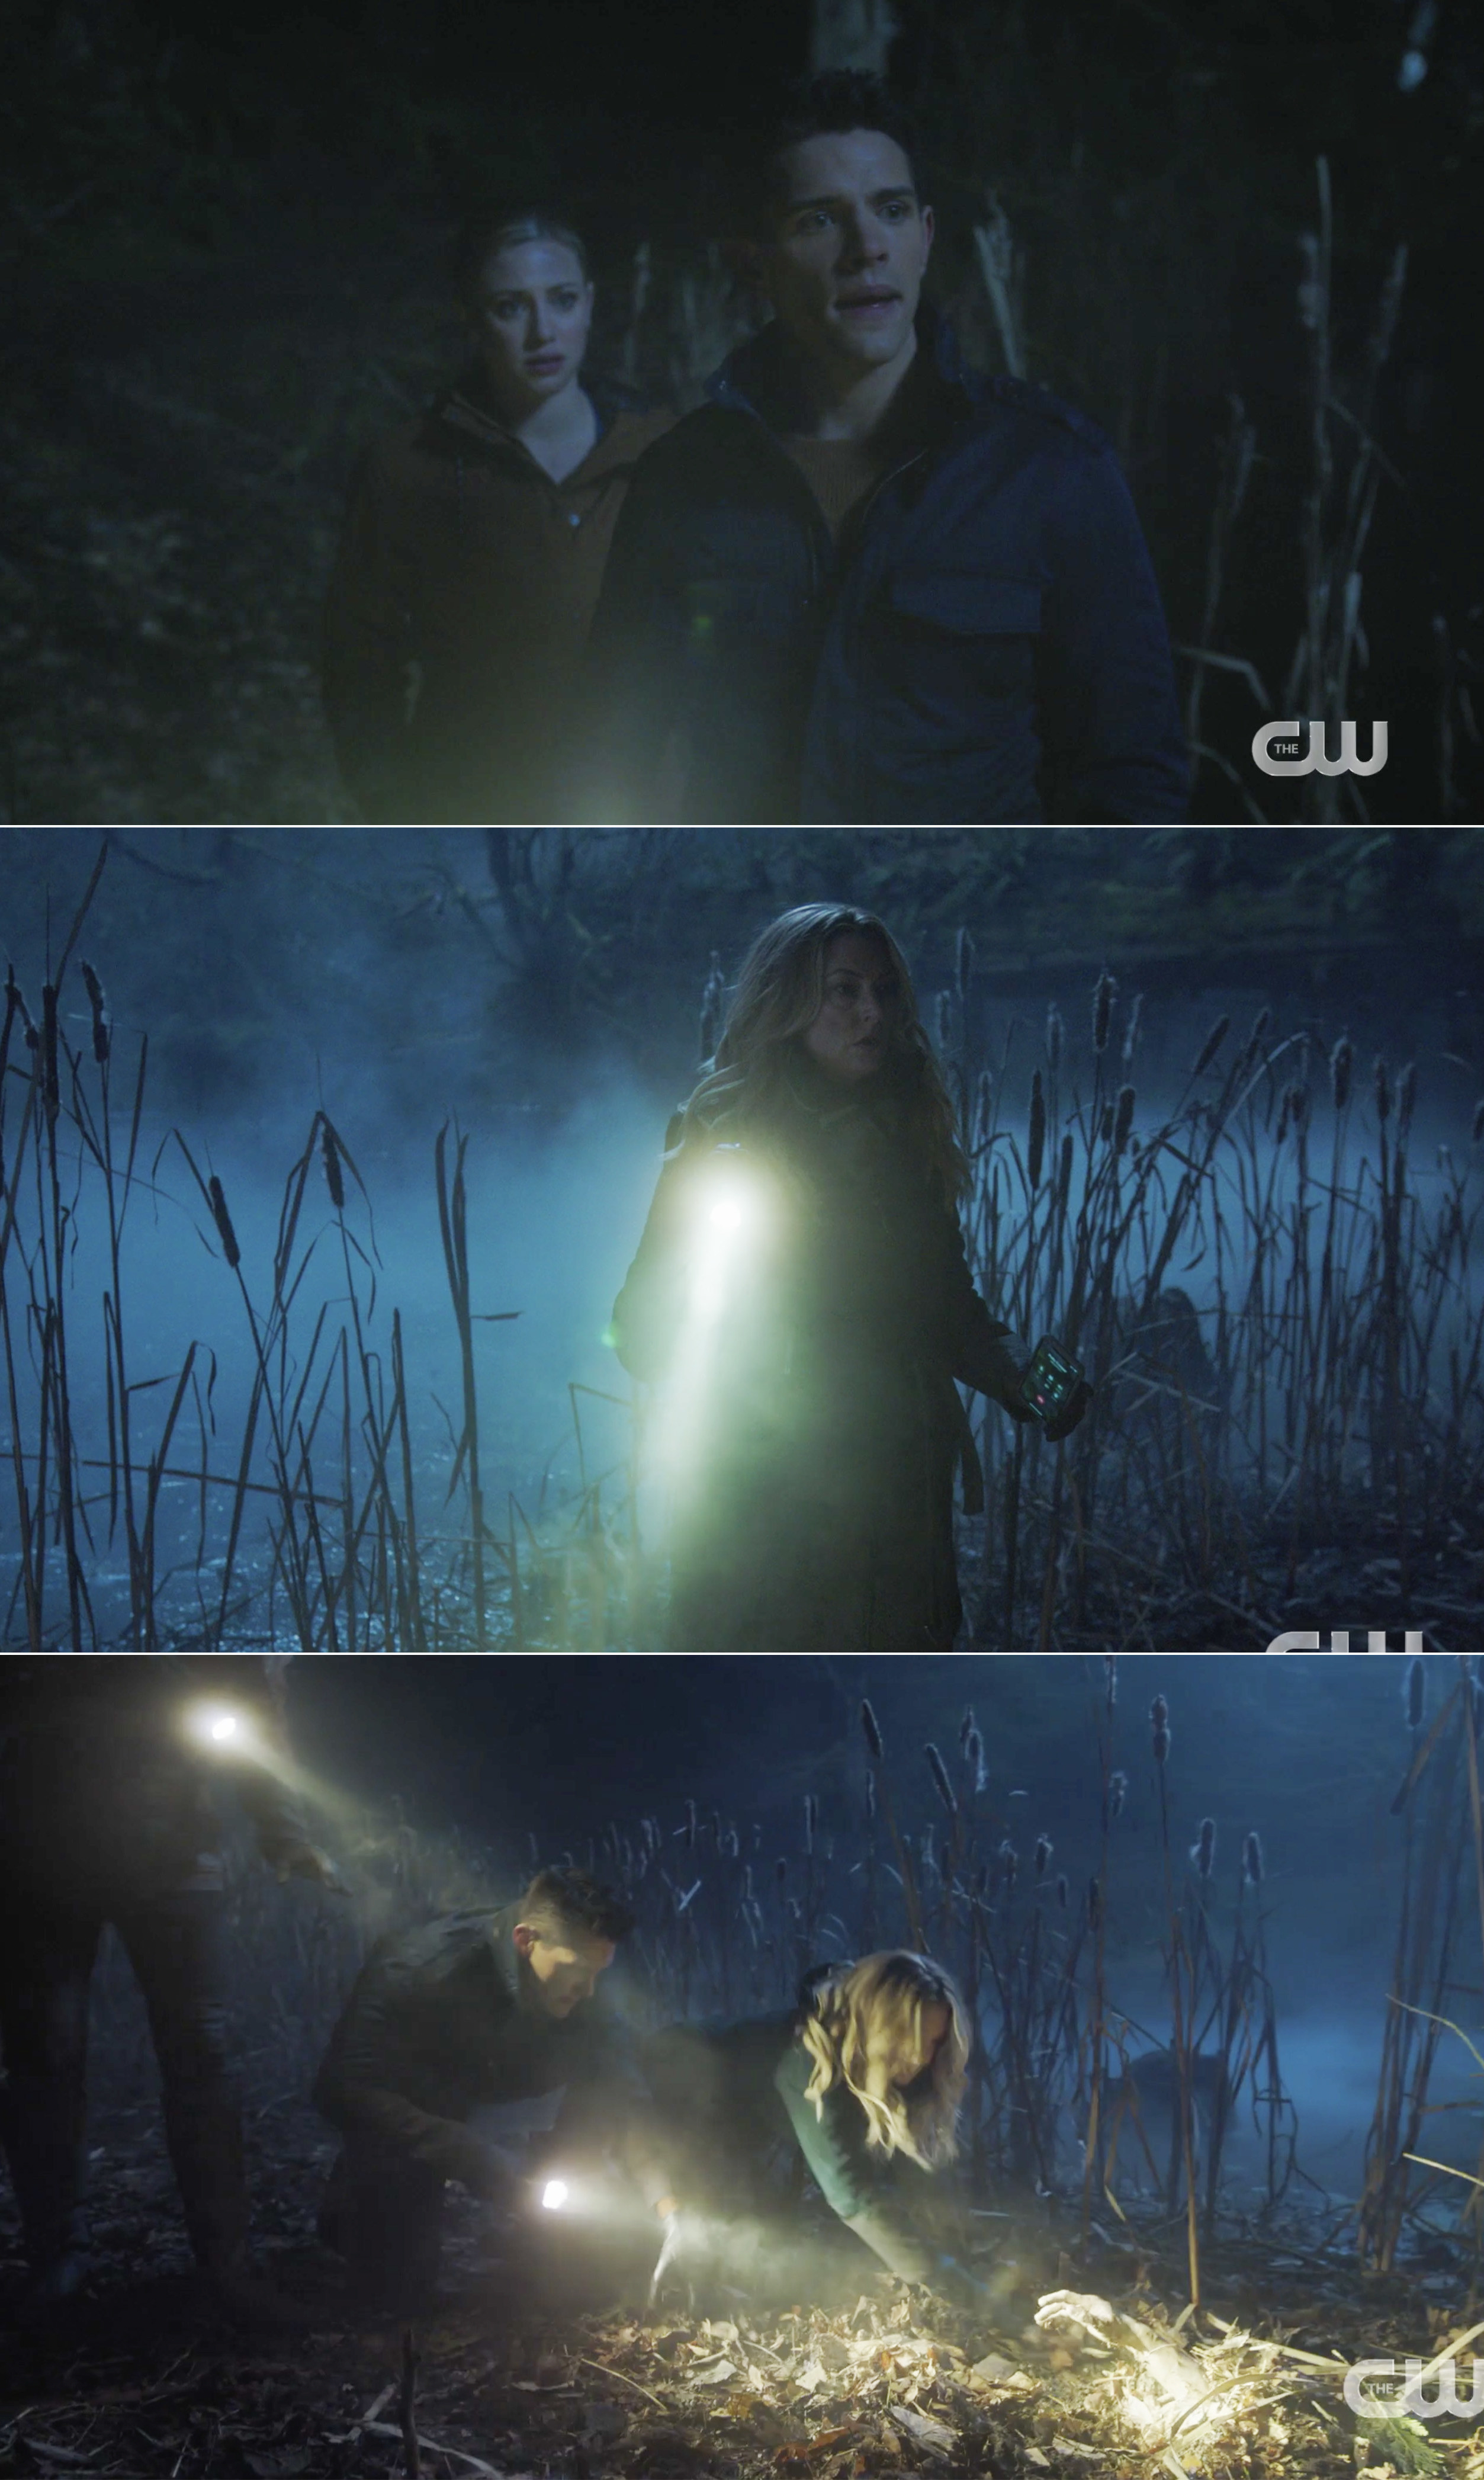 Alice, Kevin, and Betty searching a swamp and finding a hand sticking out of the ground